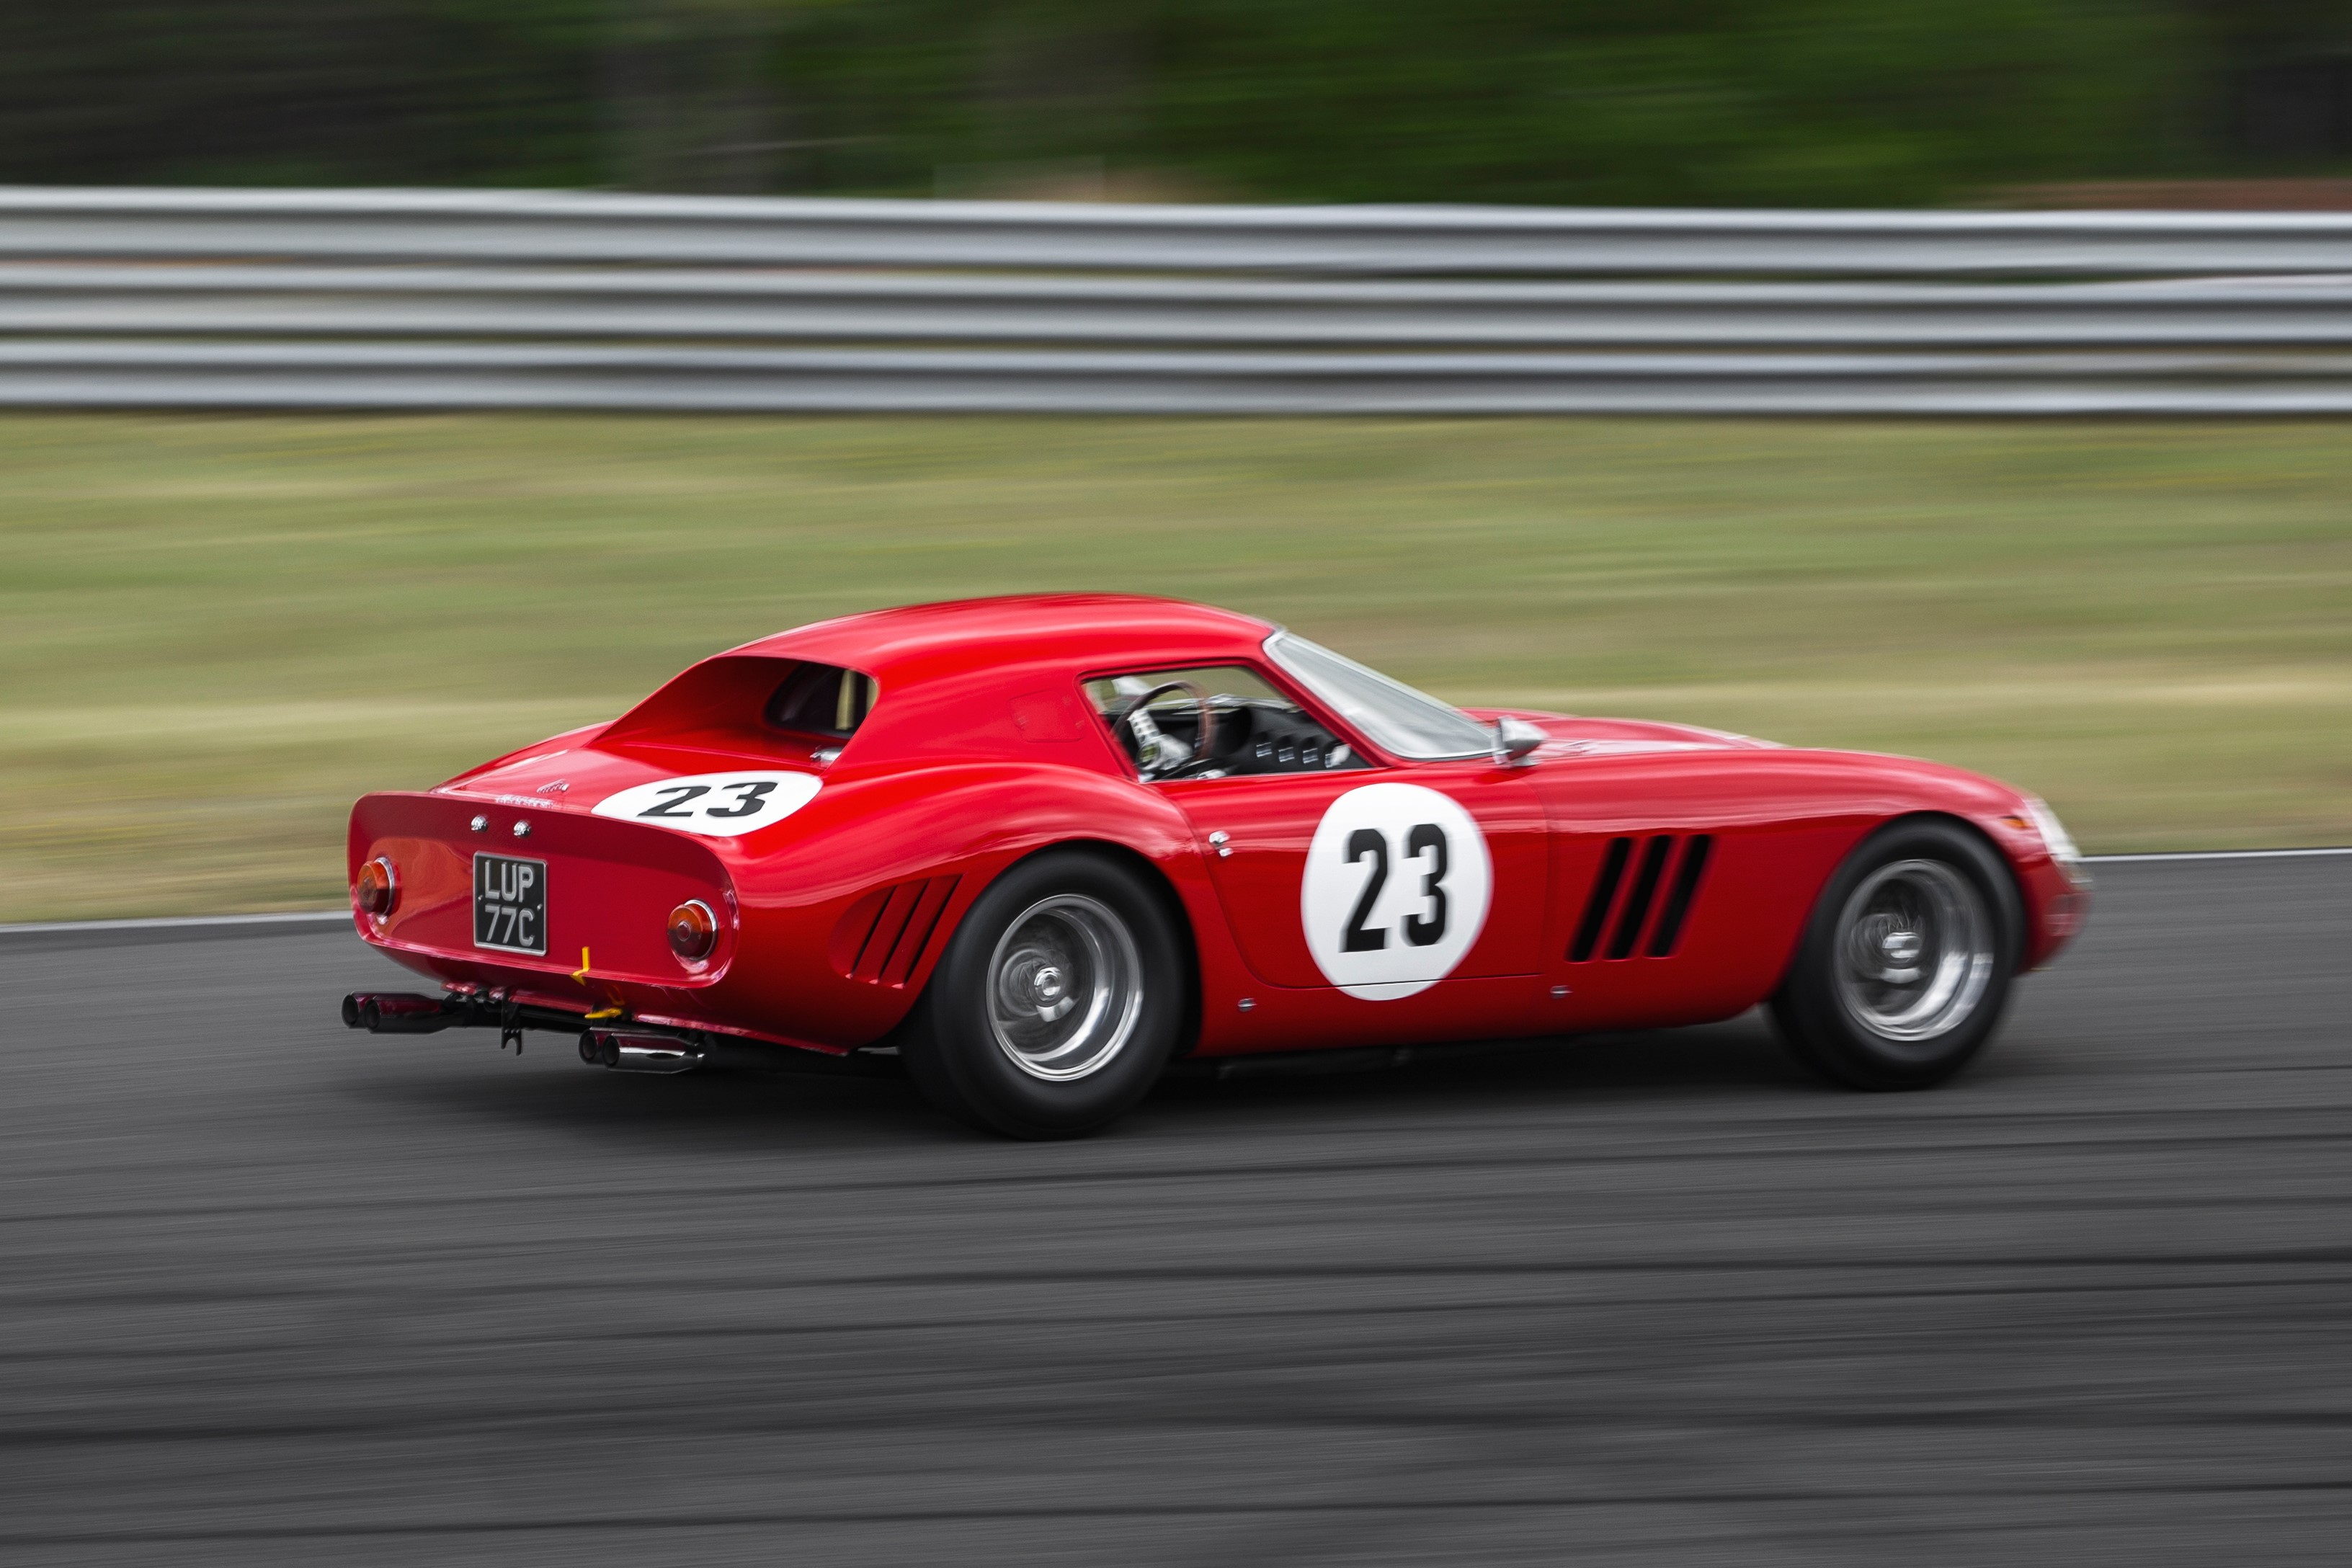 THE-MOST-VALUABLE-CAR-EVER-OFFERED-AT-AUCTION---1962-FERRARI-250-GTO-TO-HEADLINE-RM-SOTHEBY-S-FLAGSH